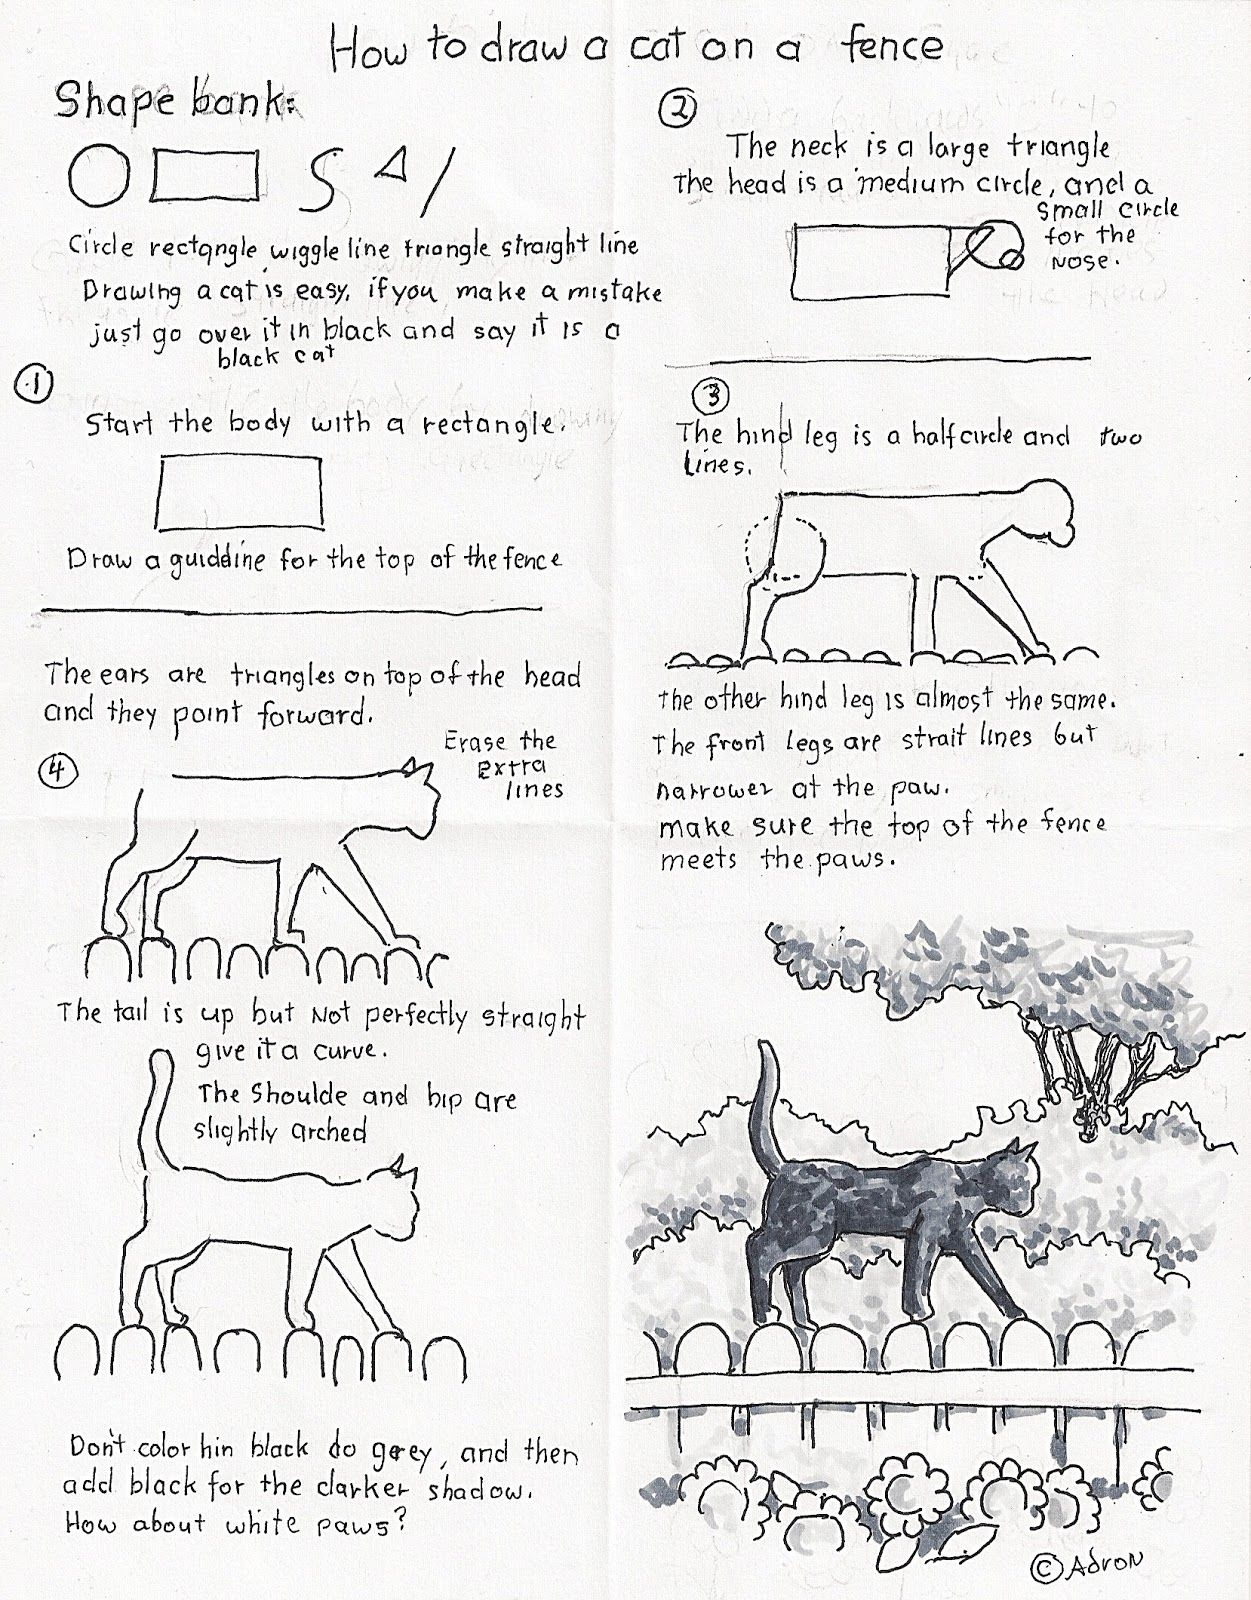 How To Draw A Black Cat On A Fence Worksheet